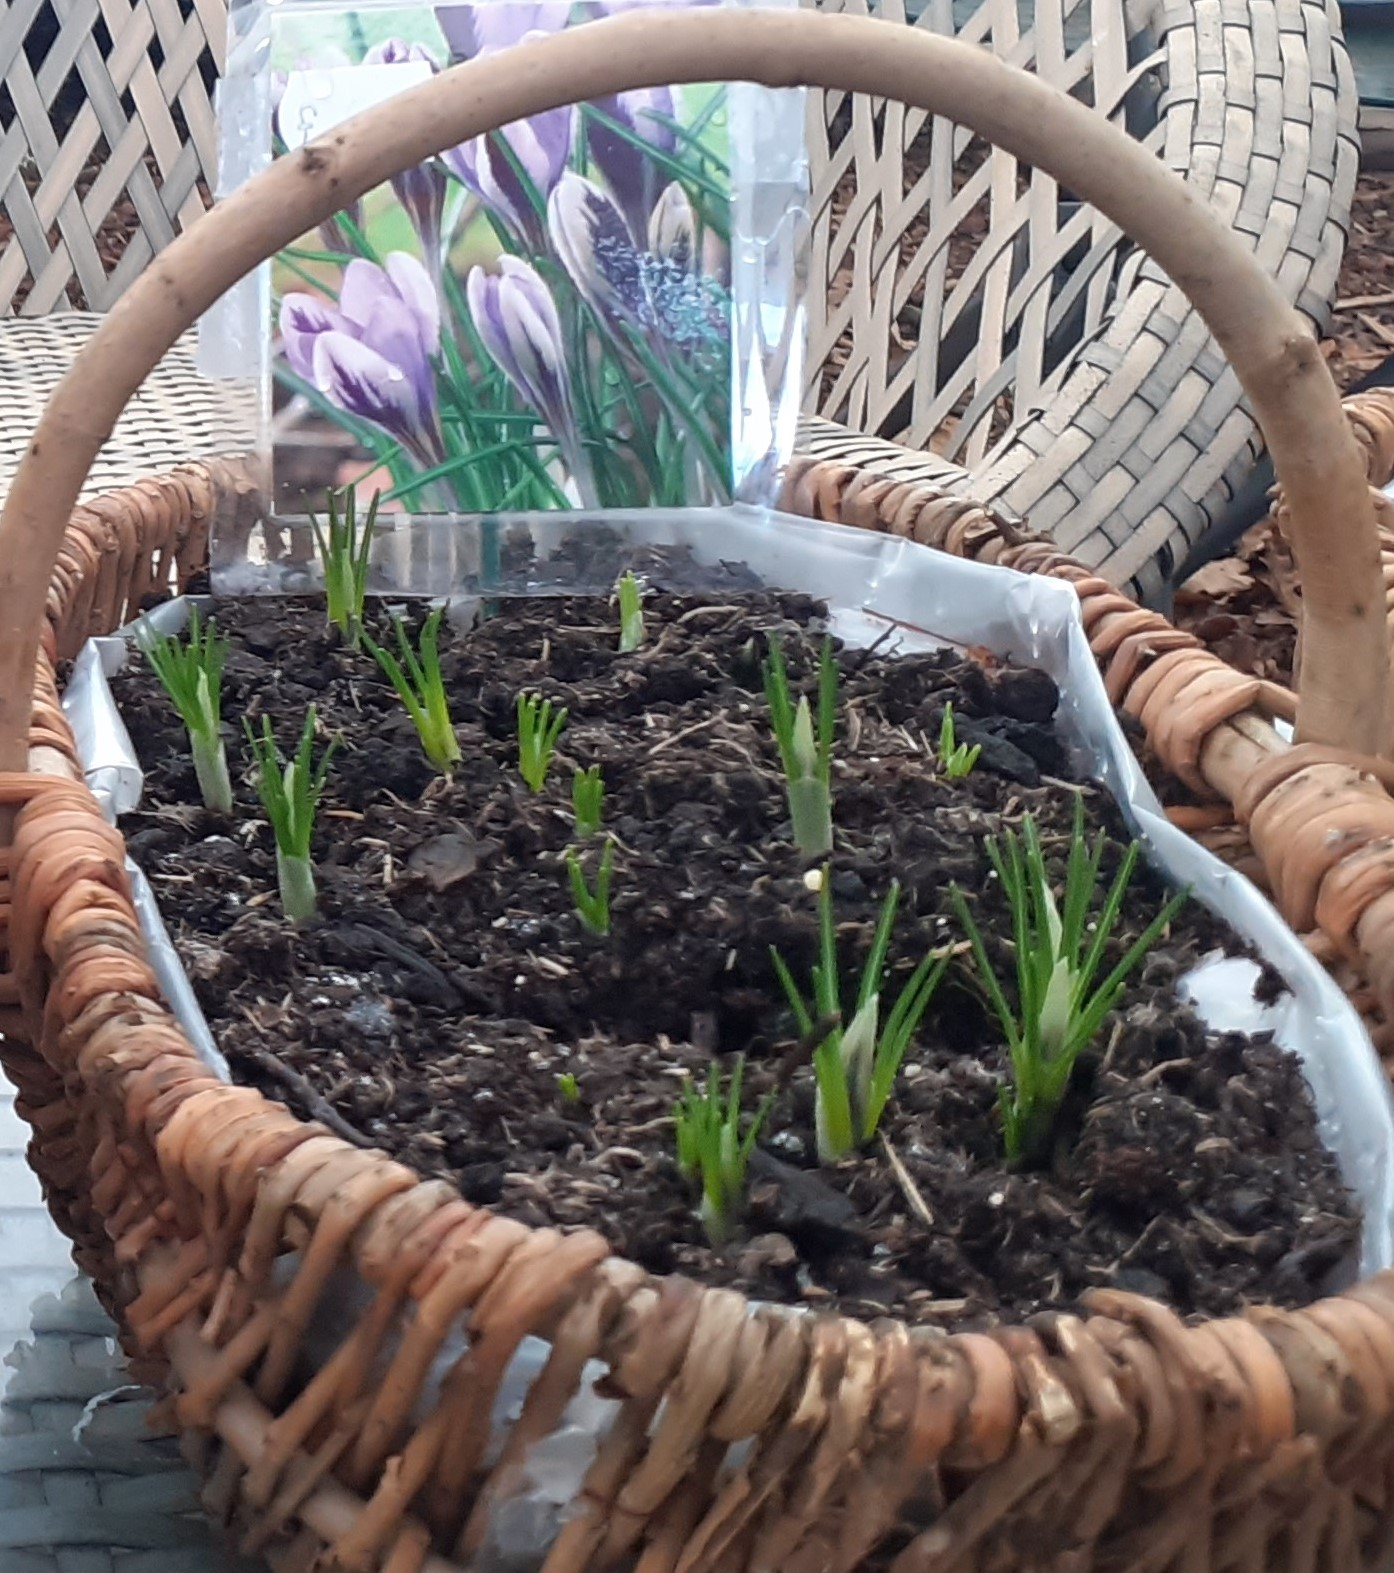 Spring_Bulbs_in_a_Basket2.jpg